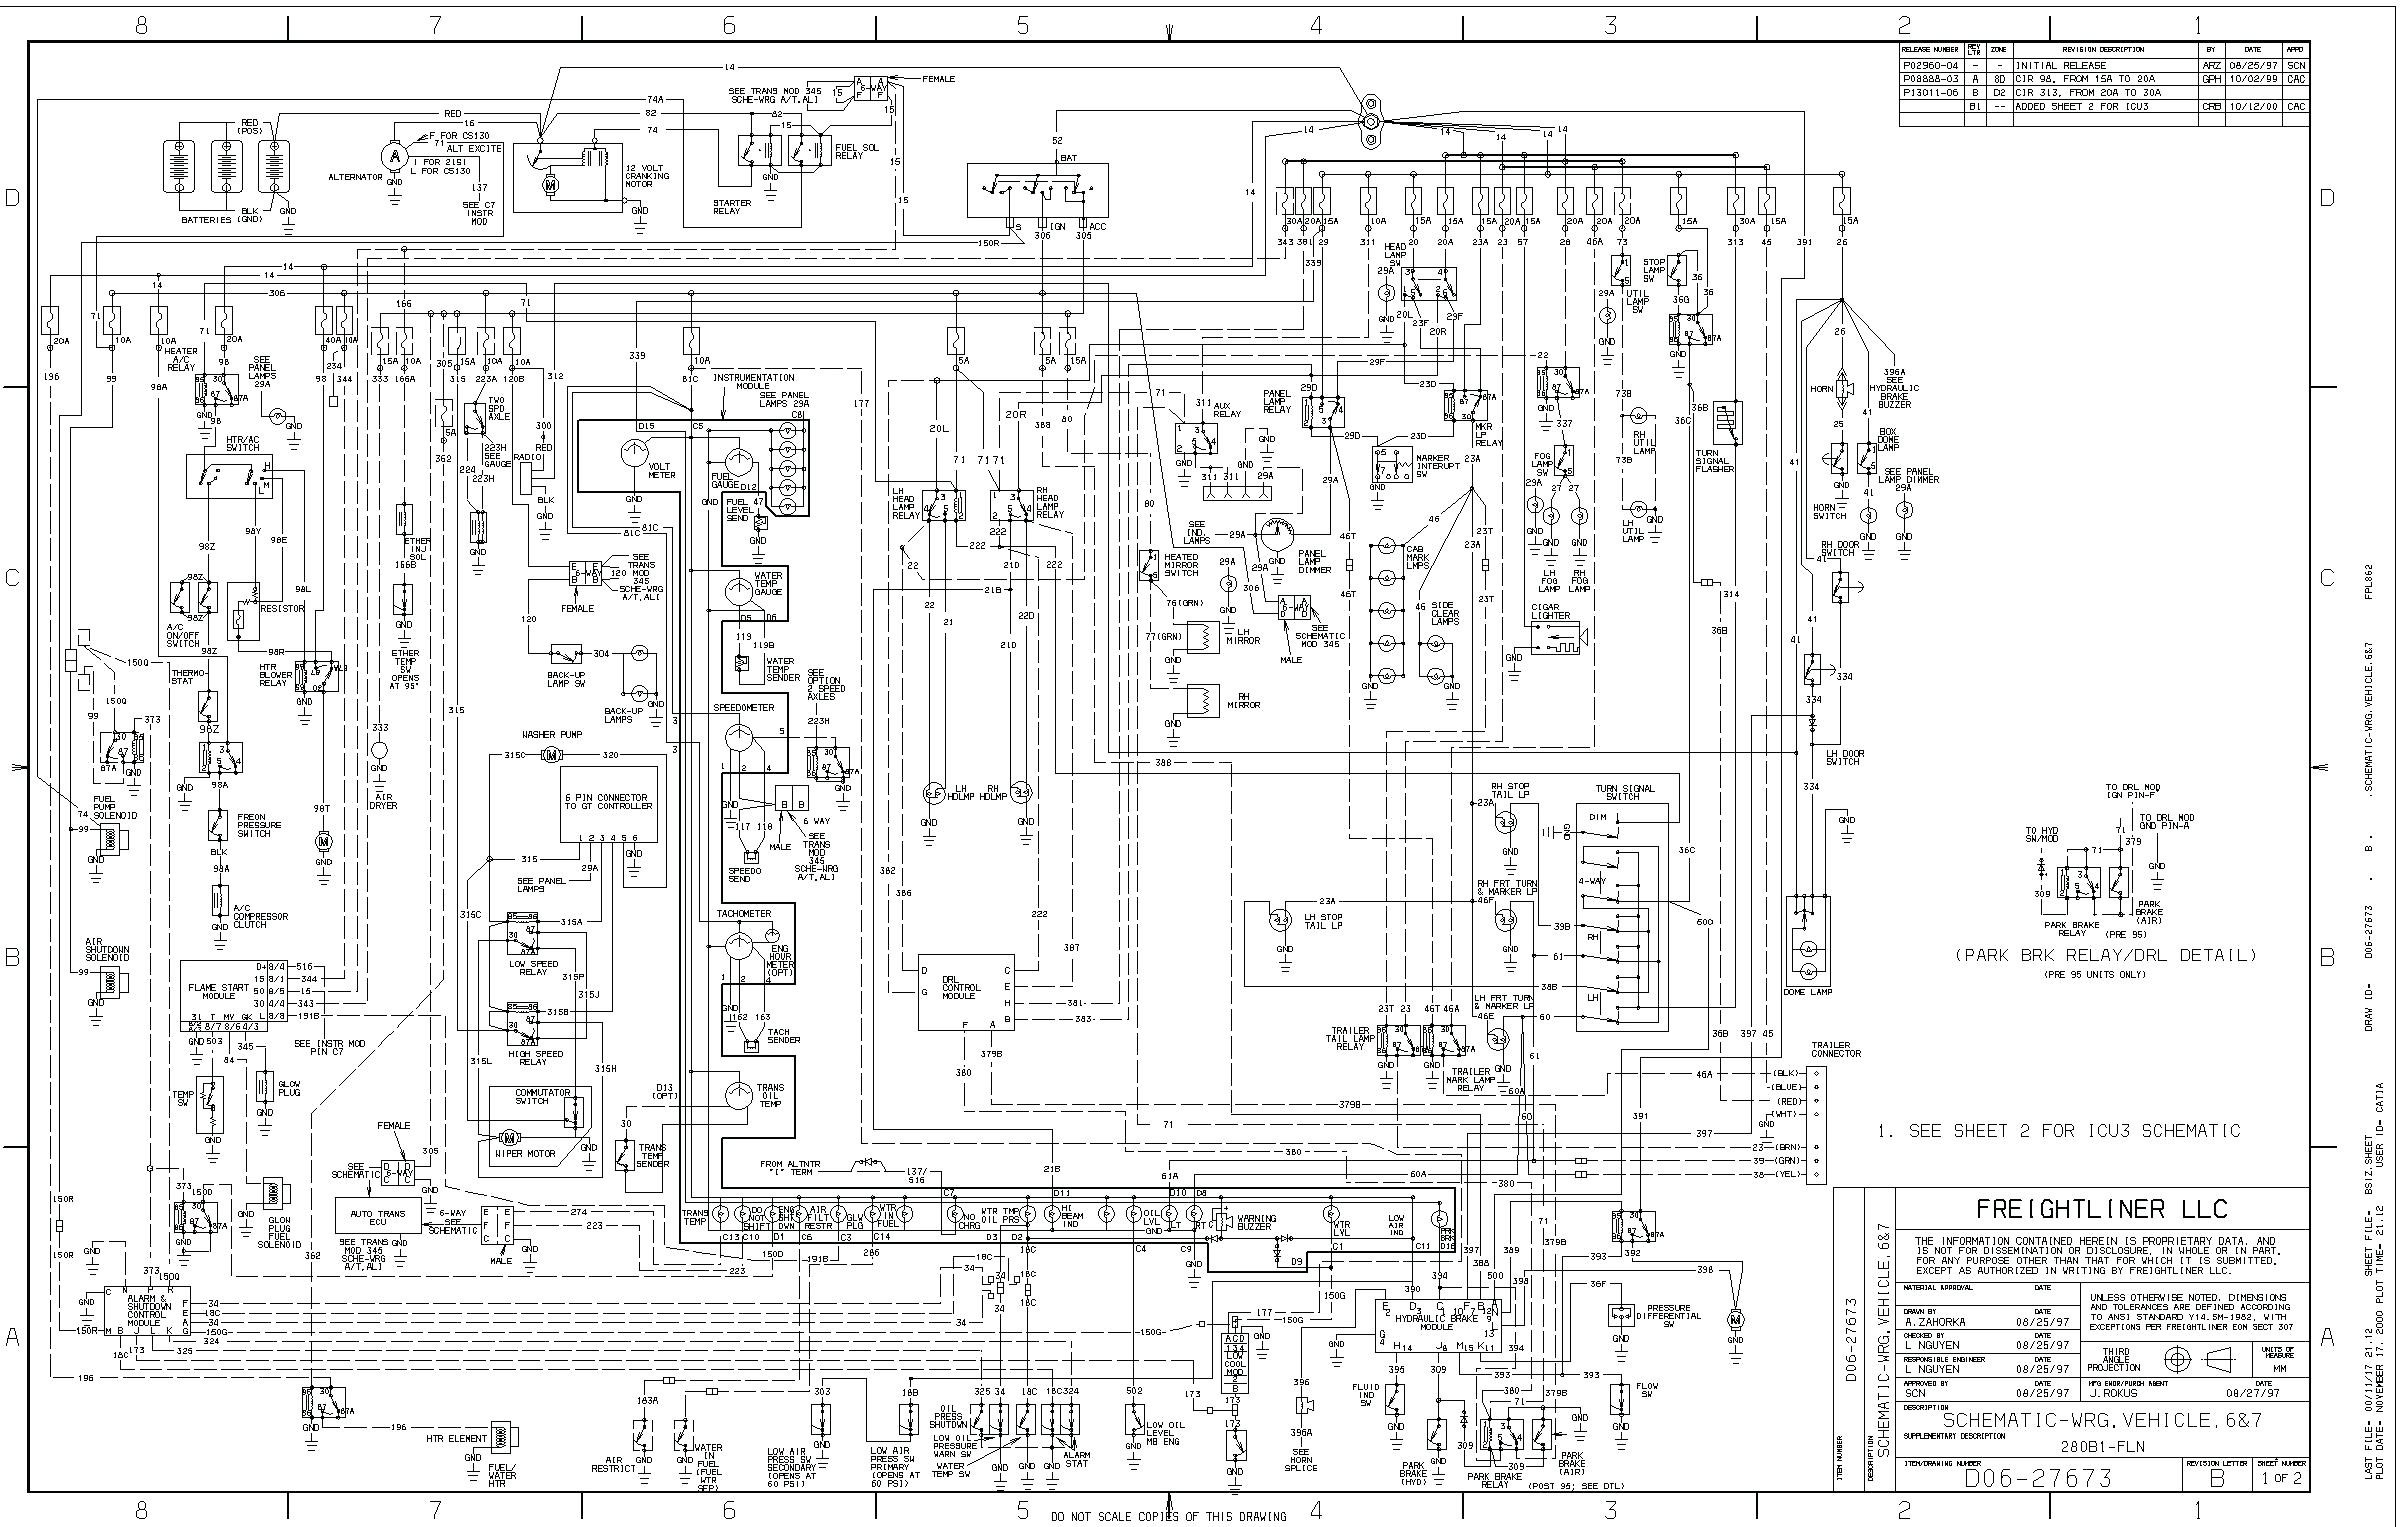 Wiring Diagram Toyota Ipsum And Schematics Of Camry 2000 Engine Get Free Image About Rh Dronomap Co 2002